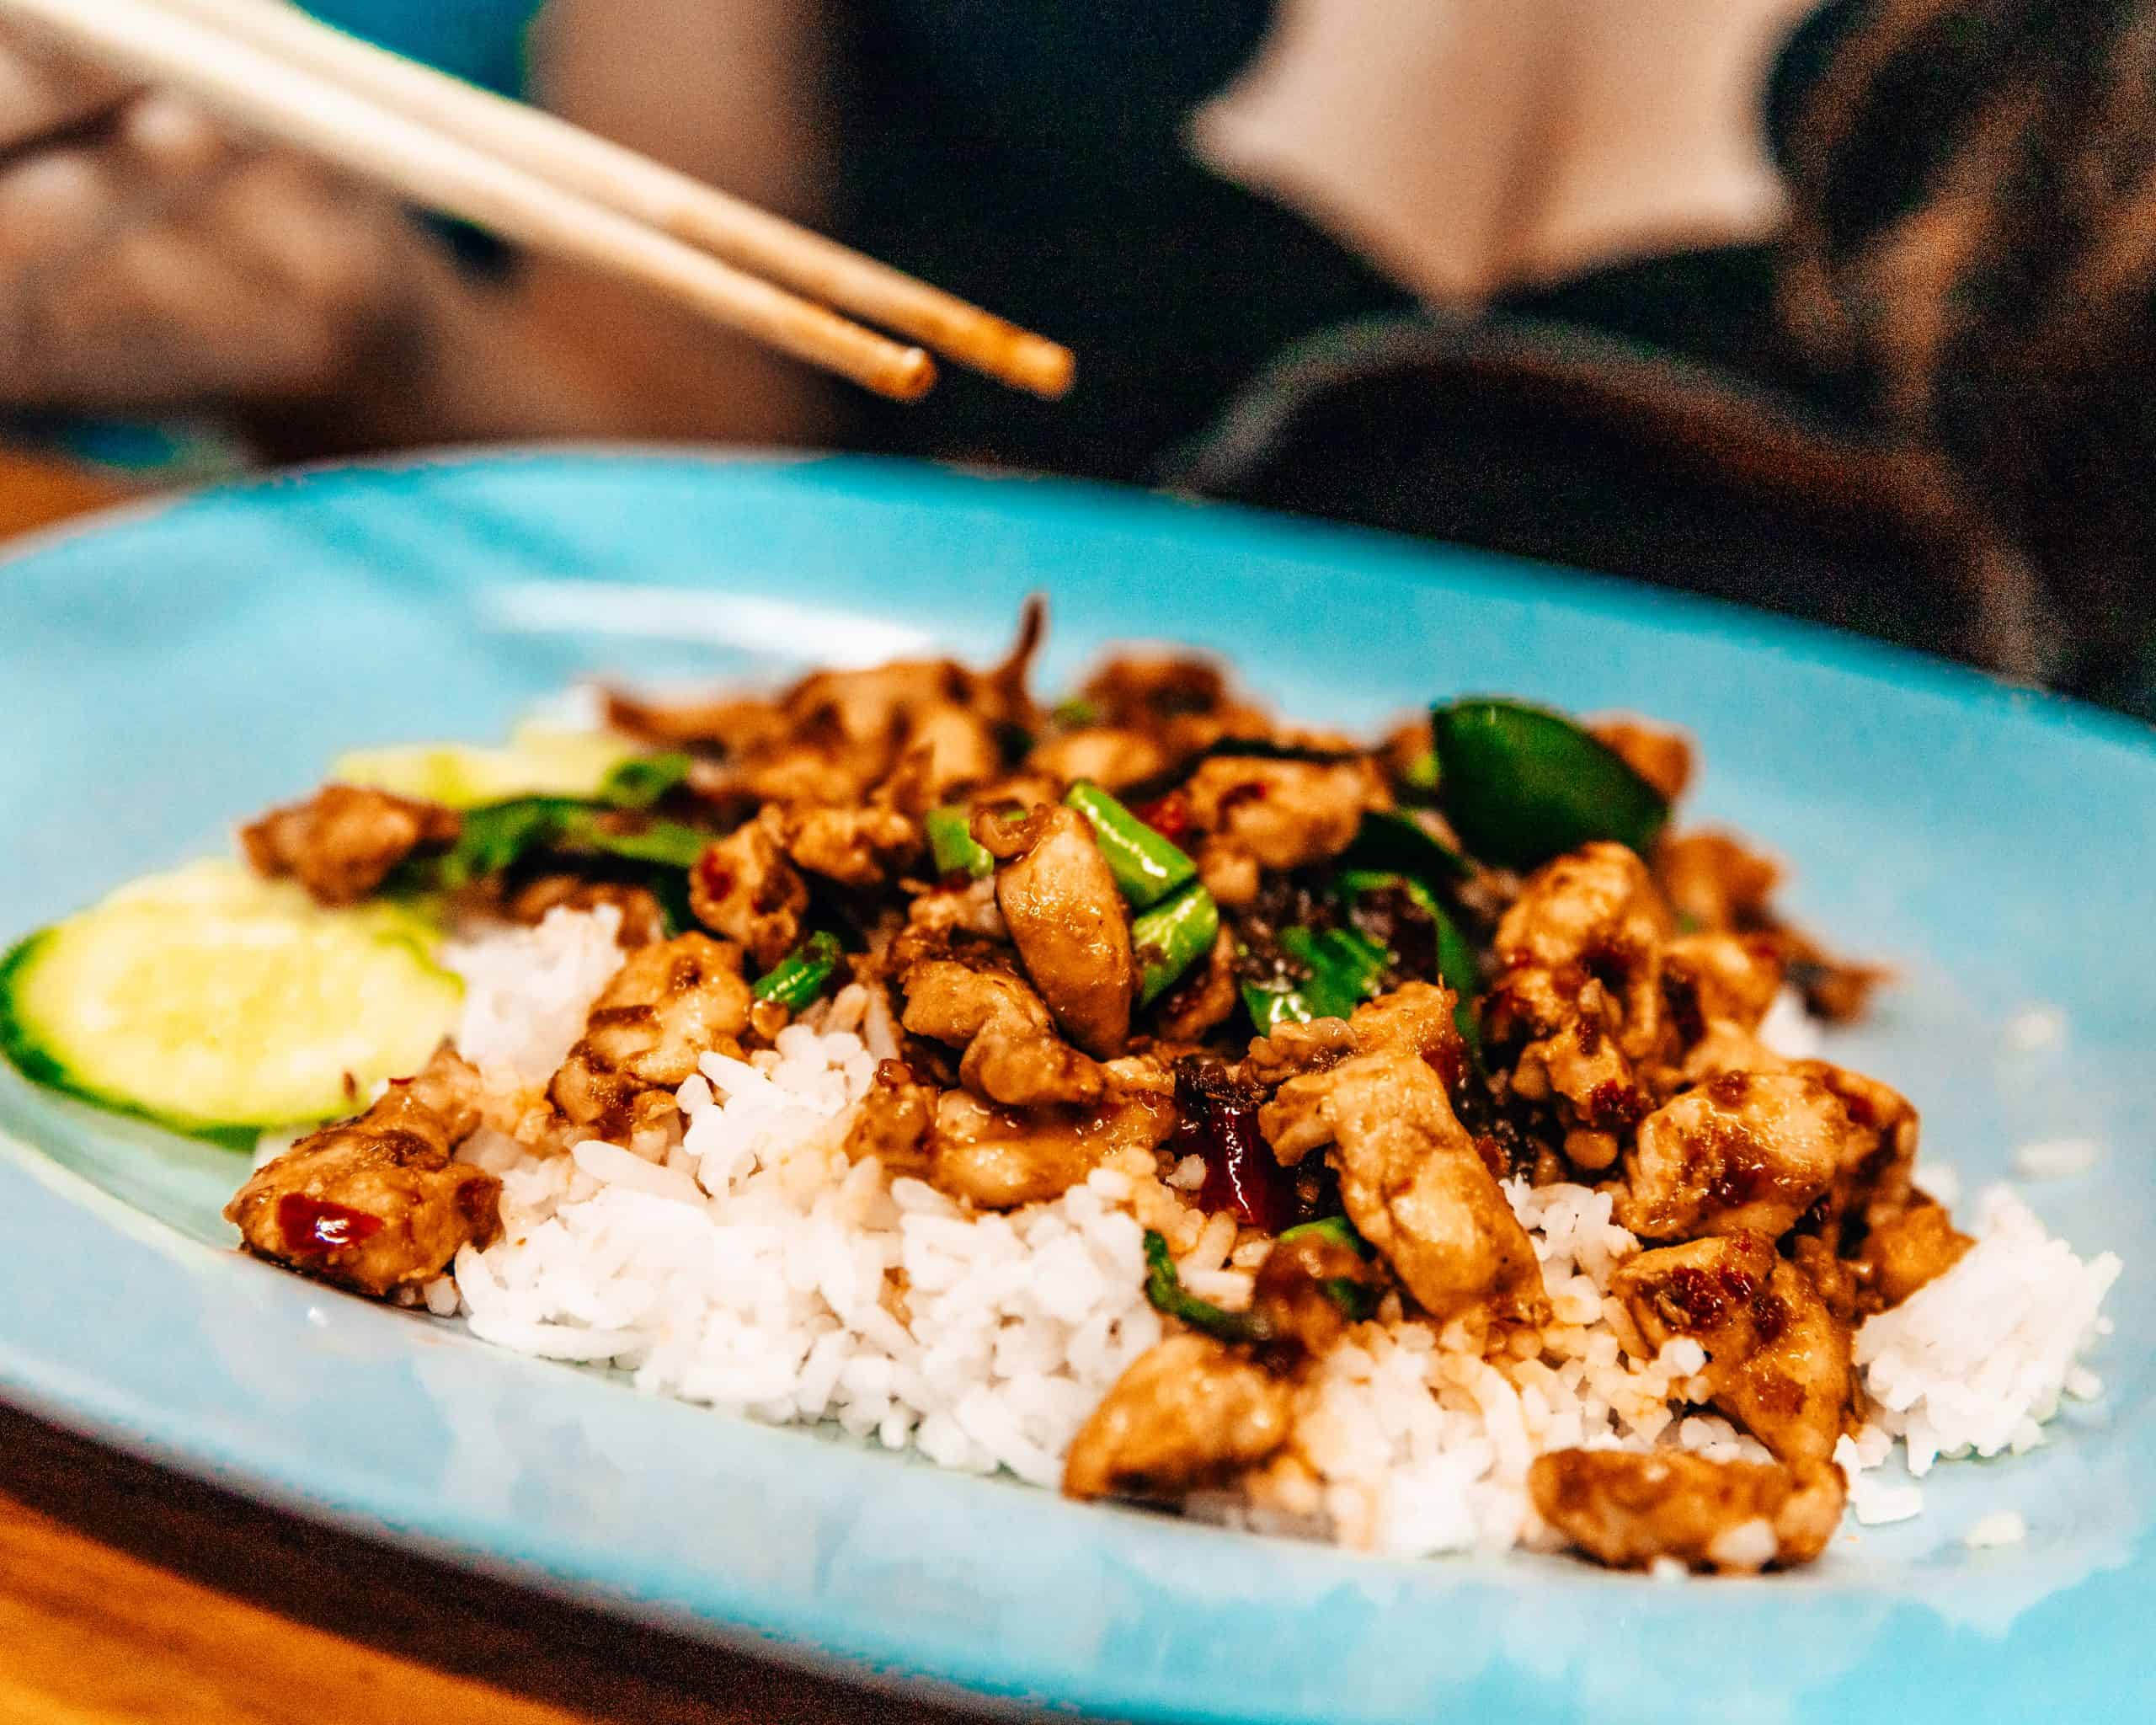 Basil Chicken Thai Food at Chatachuk Weekend Market - The Next Trip